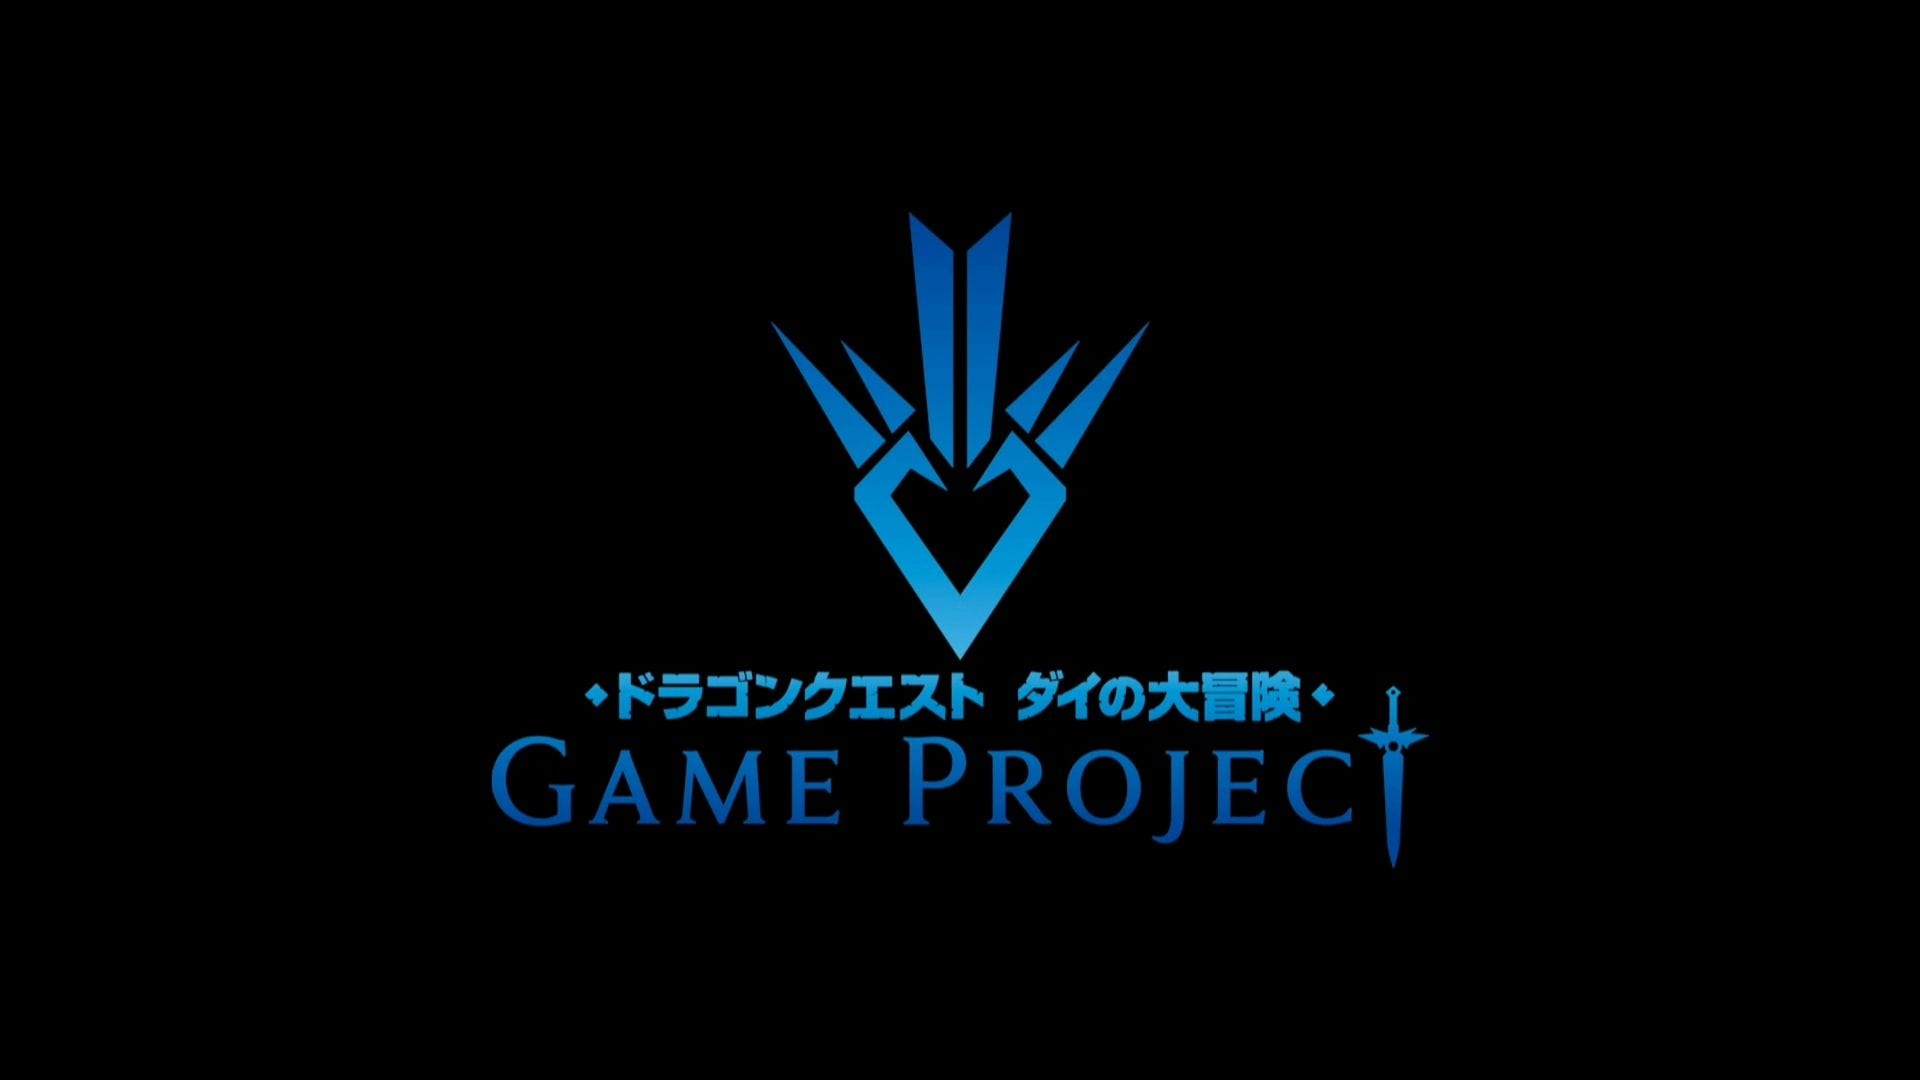 Dragon Quest Game Project